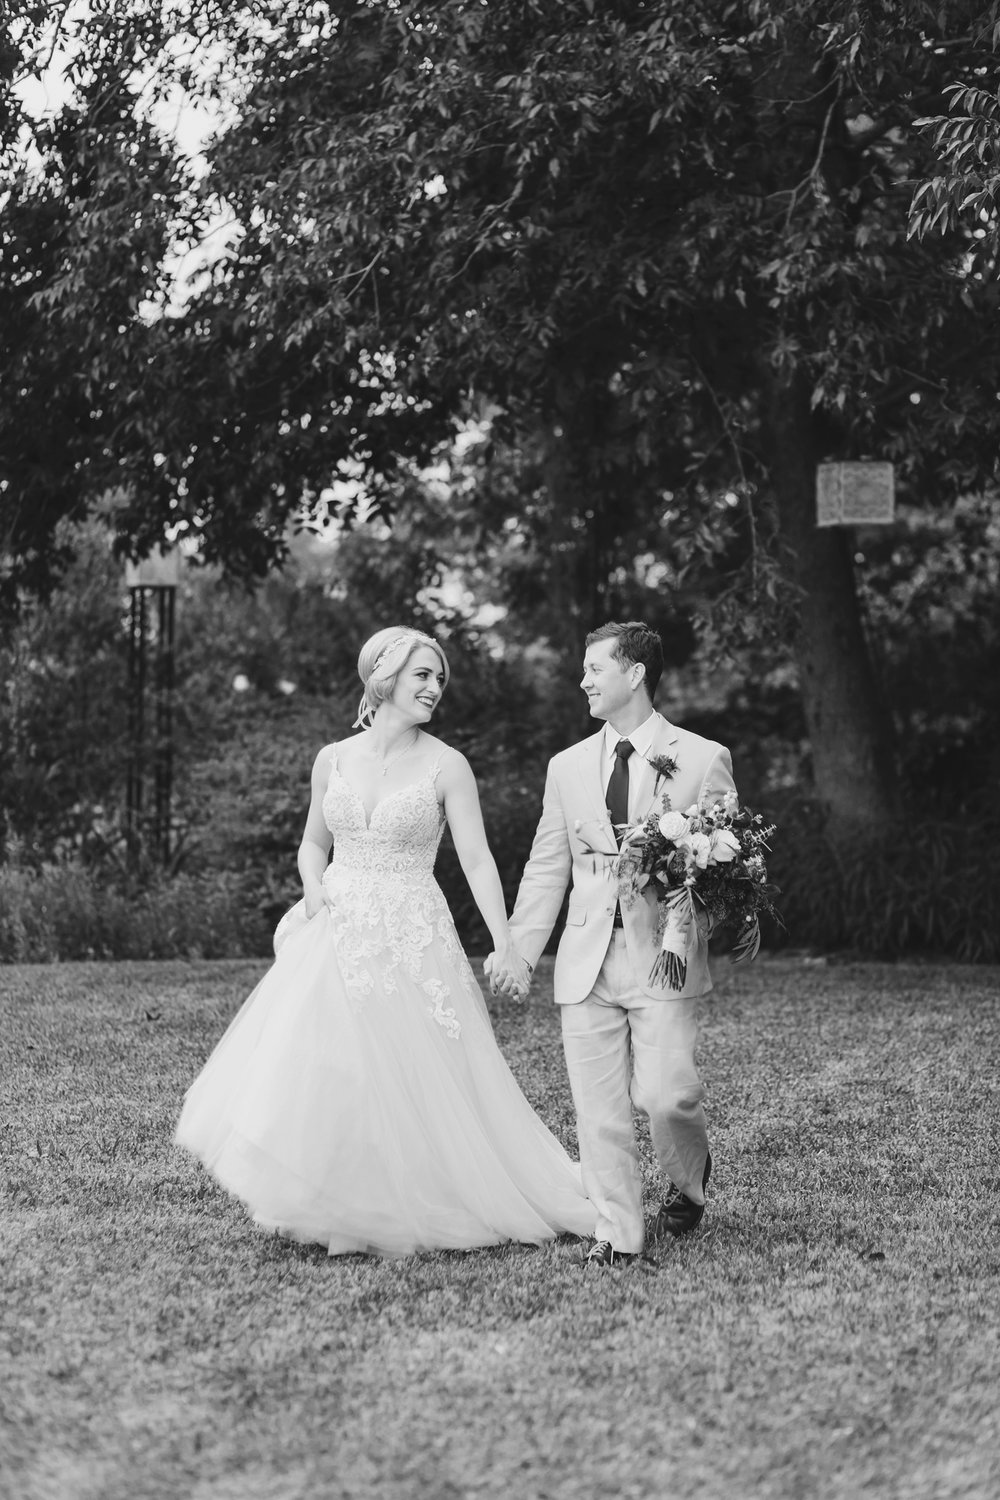 Austin_Wedding_Photographer_Kimberly_Brooke_Photographic_097.jpg